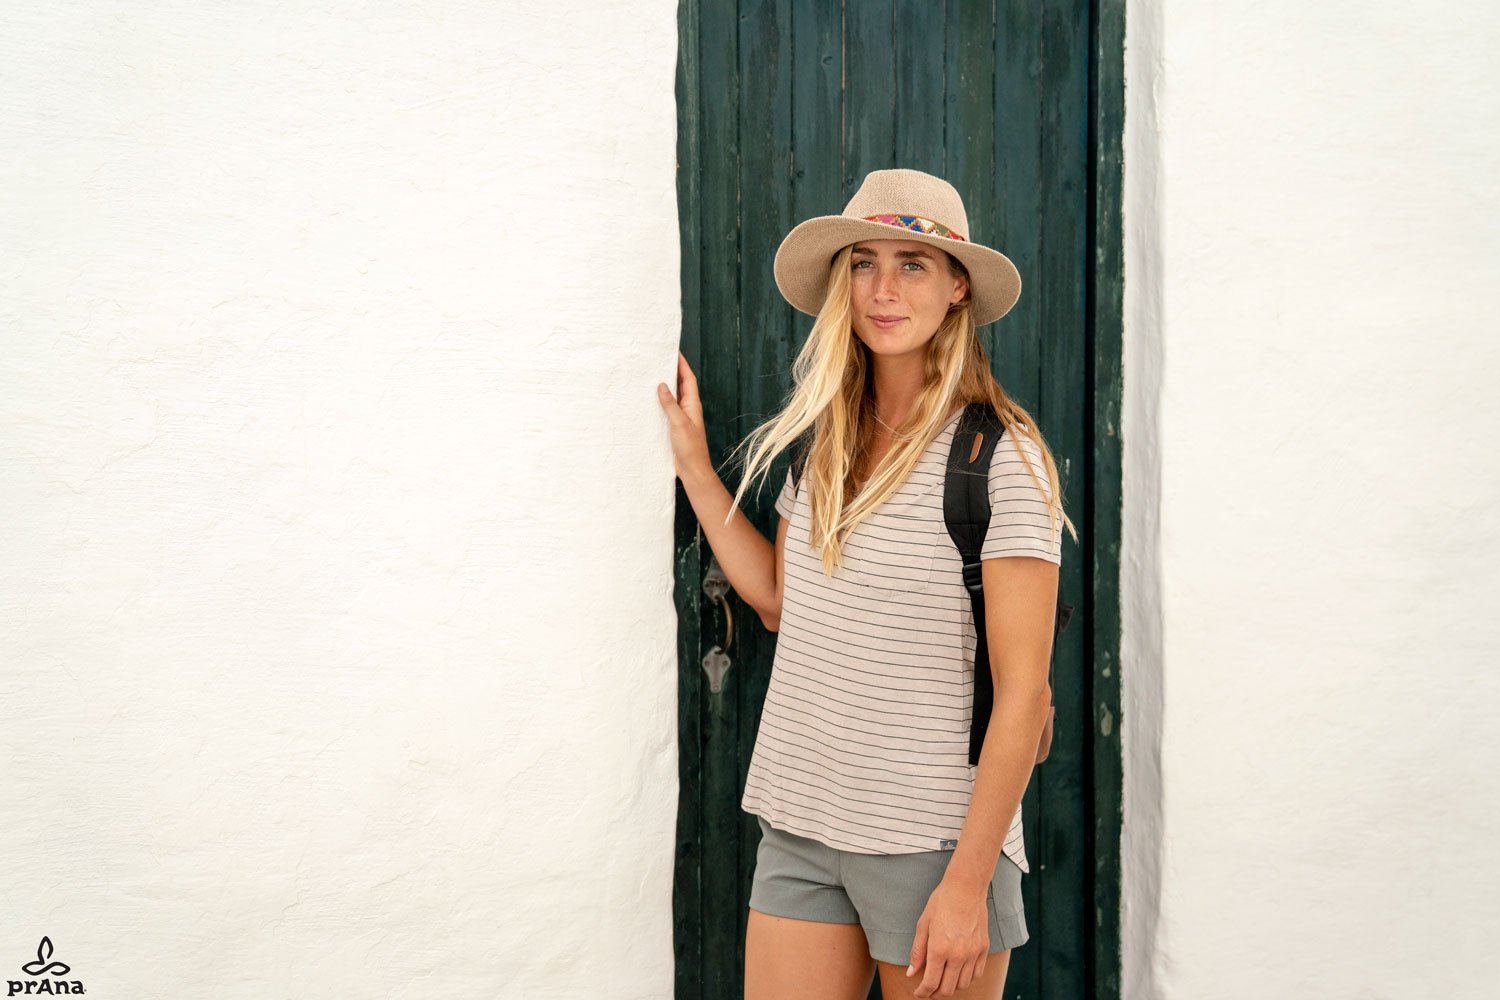 Girl in vacation clothes hat, t-shirt, backpack, shorts exploring traveling